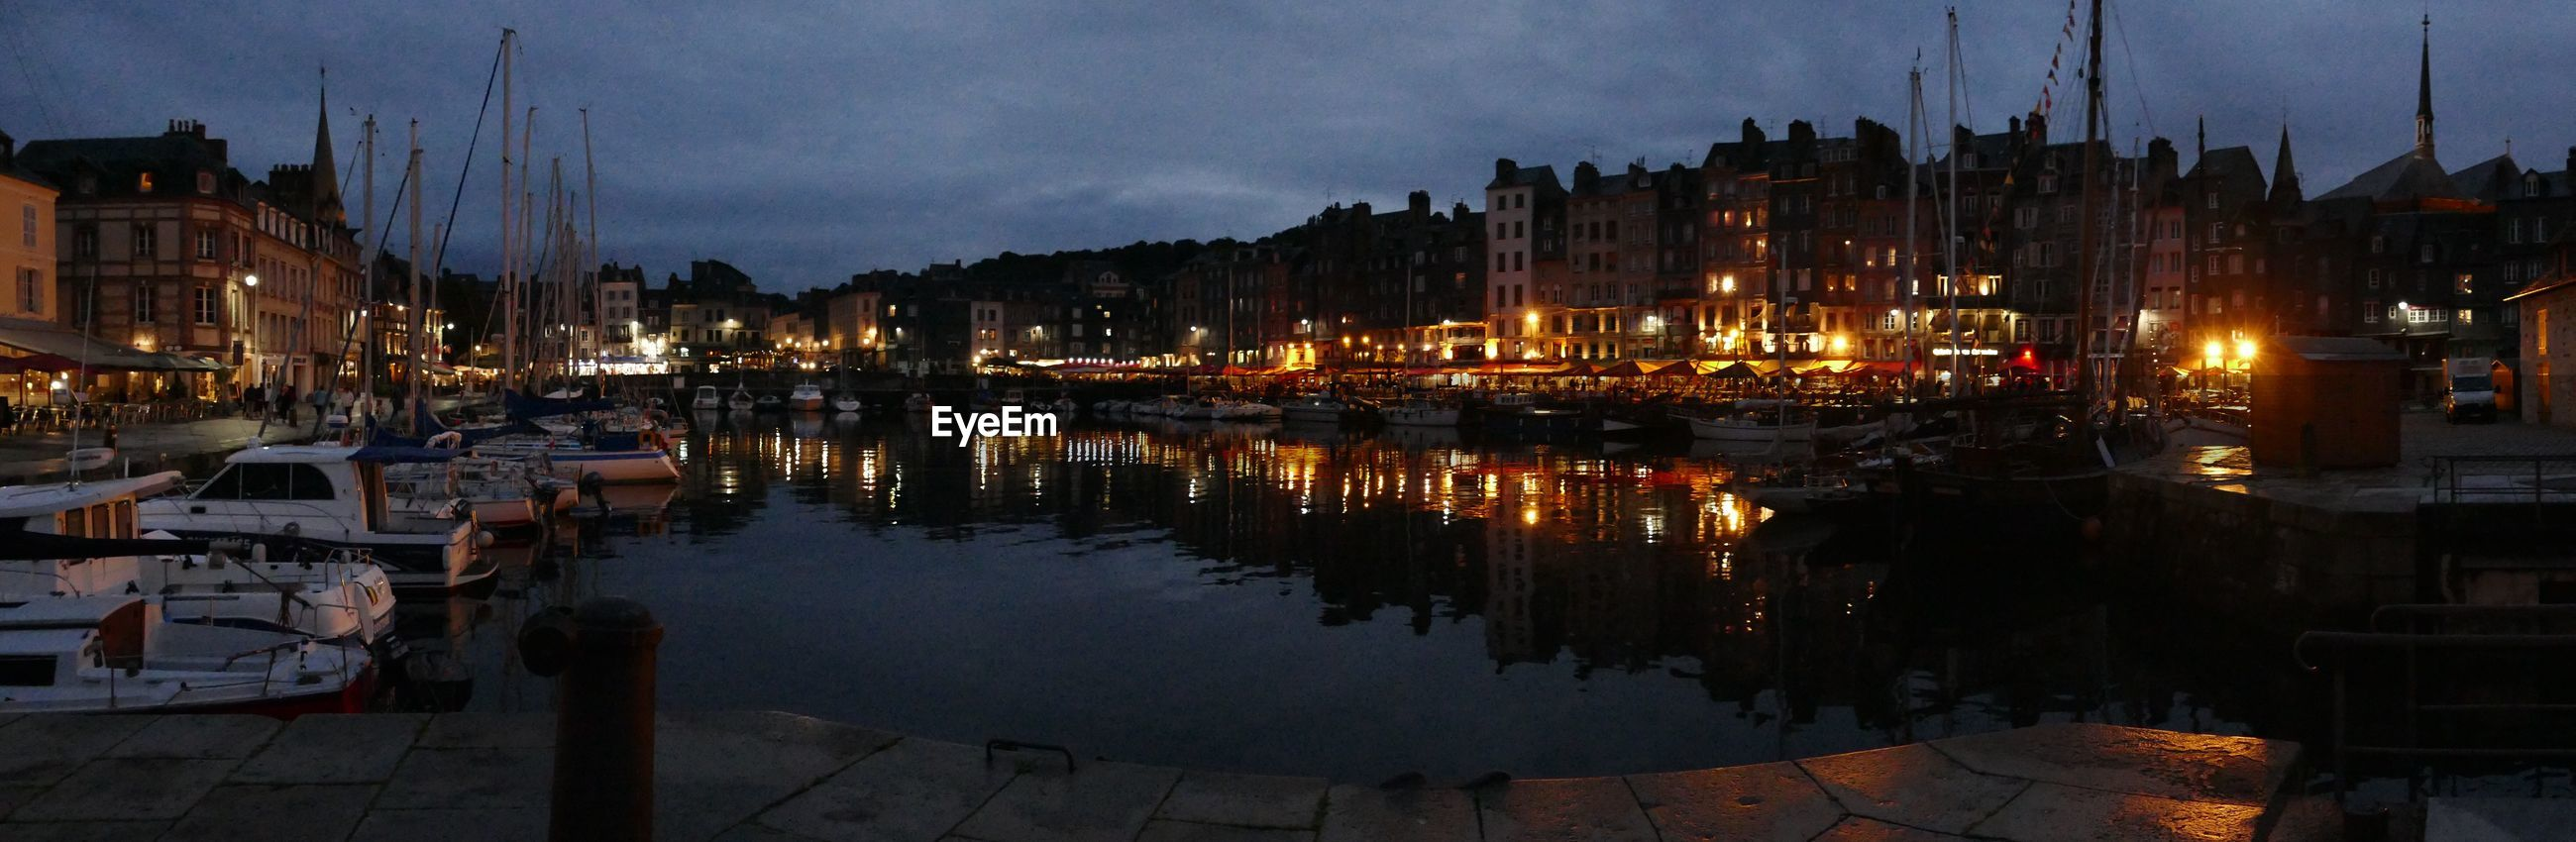 Panoramic view of illuminated port of honfleur against sky at night